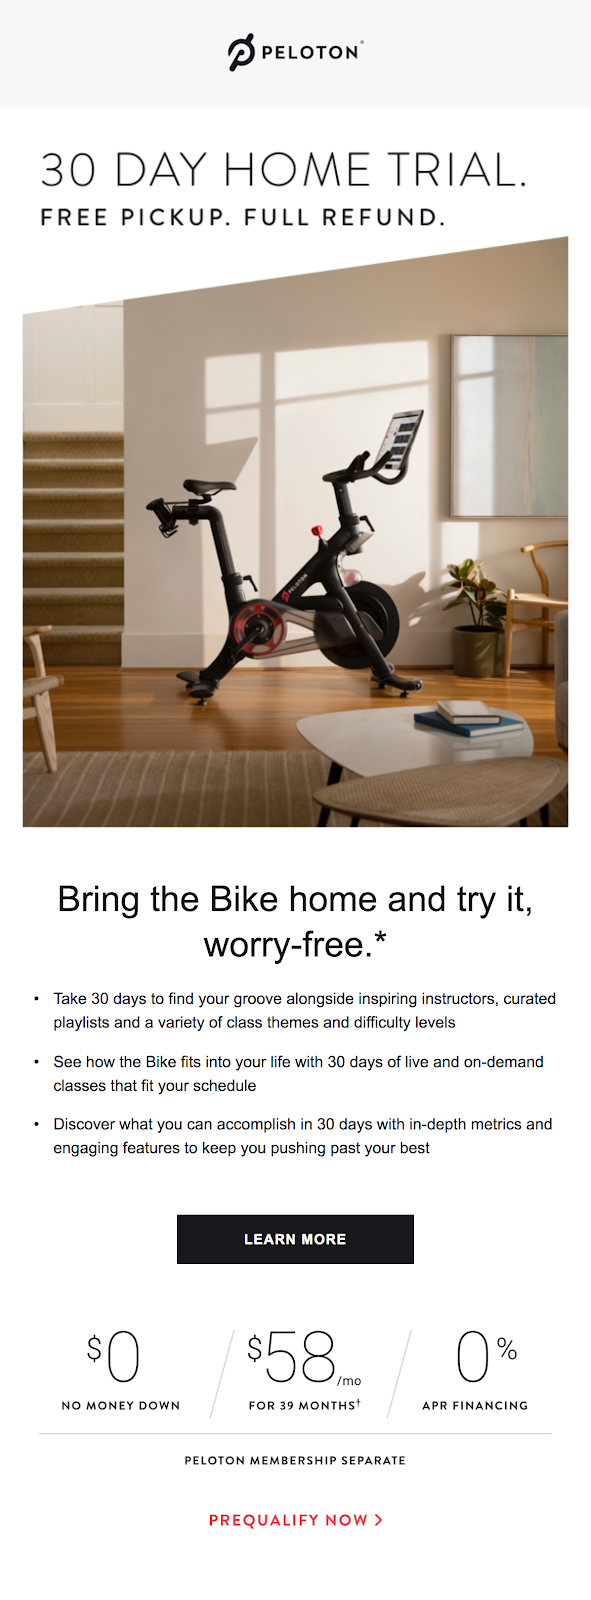 Peloton 30 day trial email